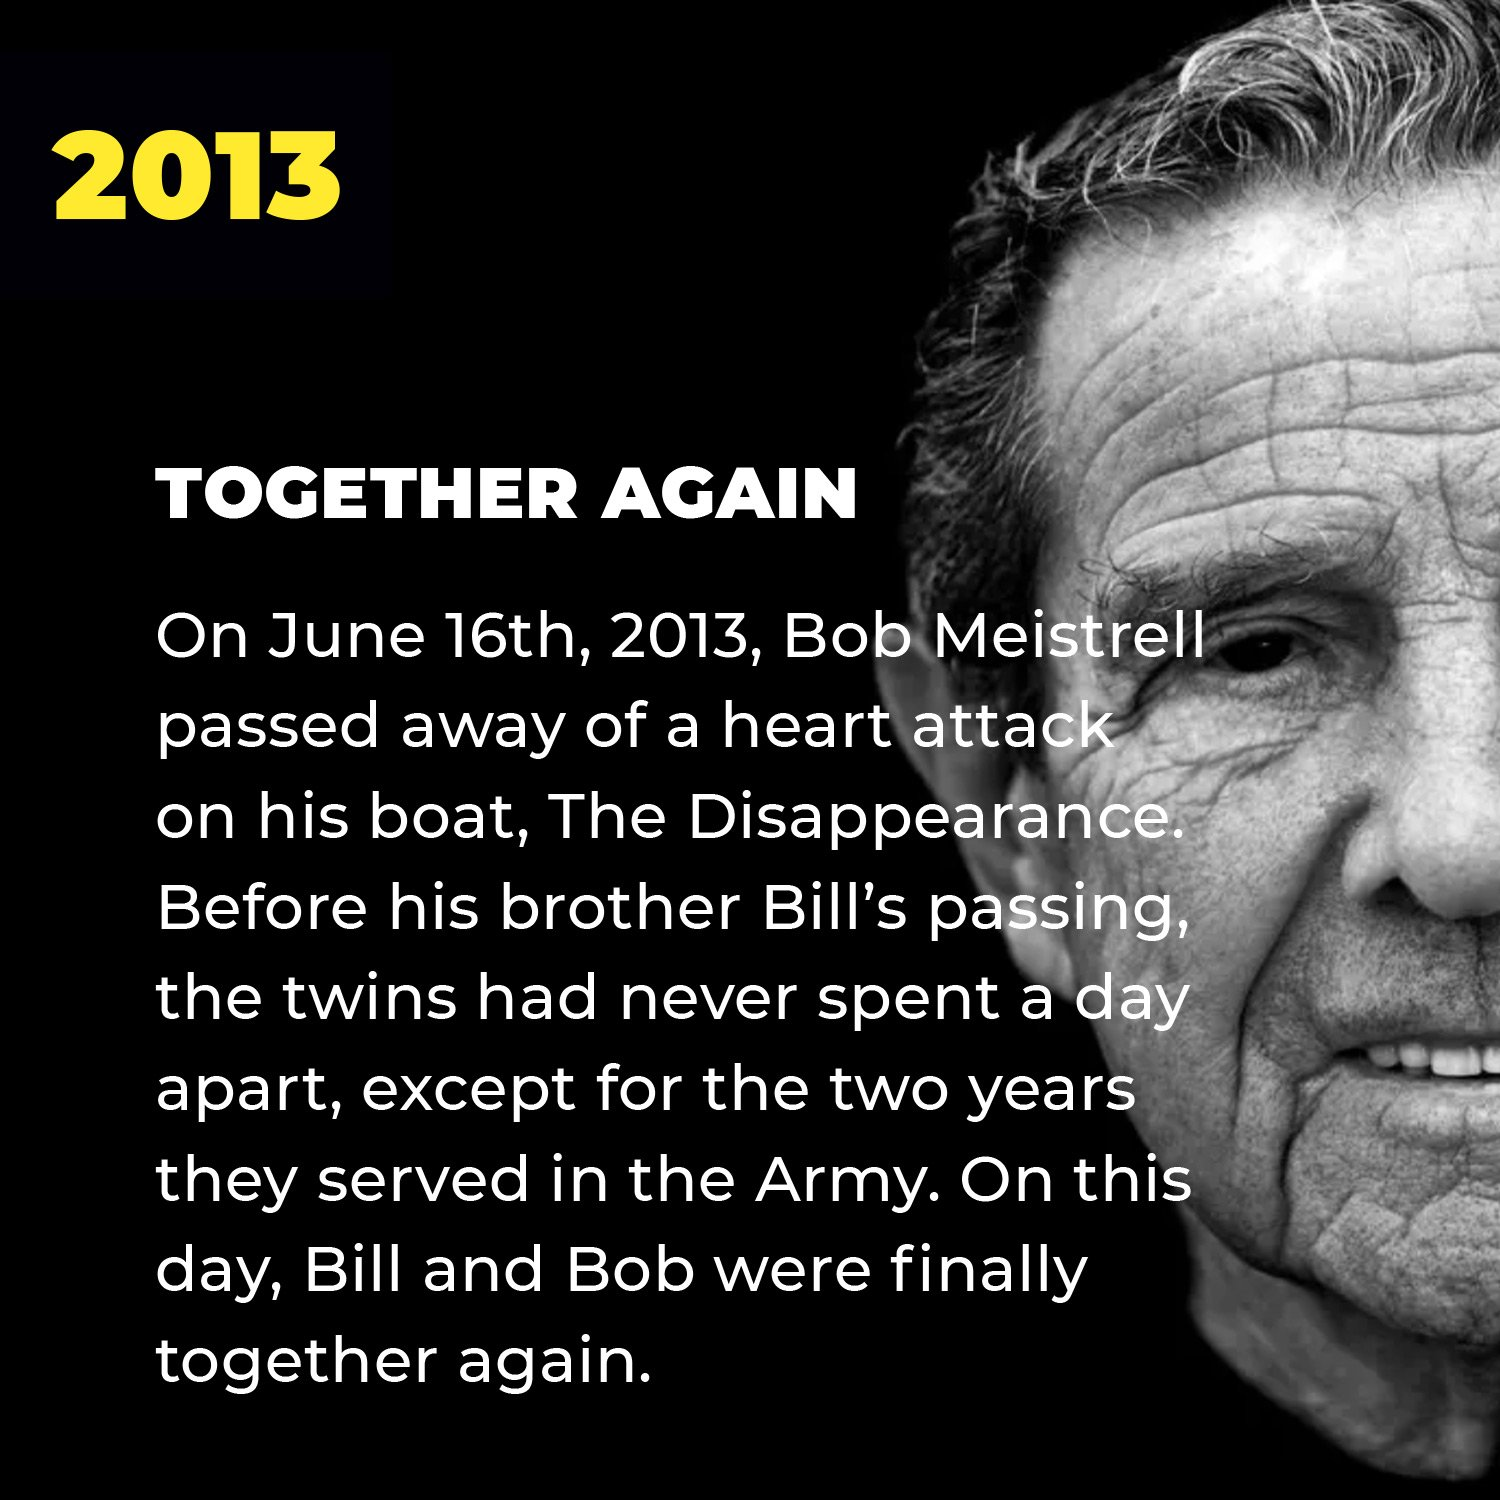 2013 | Together Again | On June 16th, 2013, Bob Meistrell passed away of a heart attack on his boat, The Disappearance. Before his brother Bill's passing, the twins had never spent a day apart, except for the two years they served in the Army. On this day, Bill and Bob were finally together again.